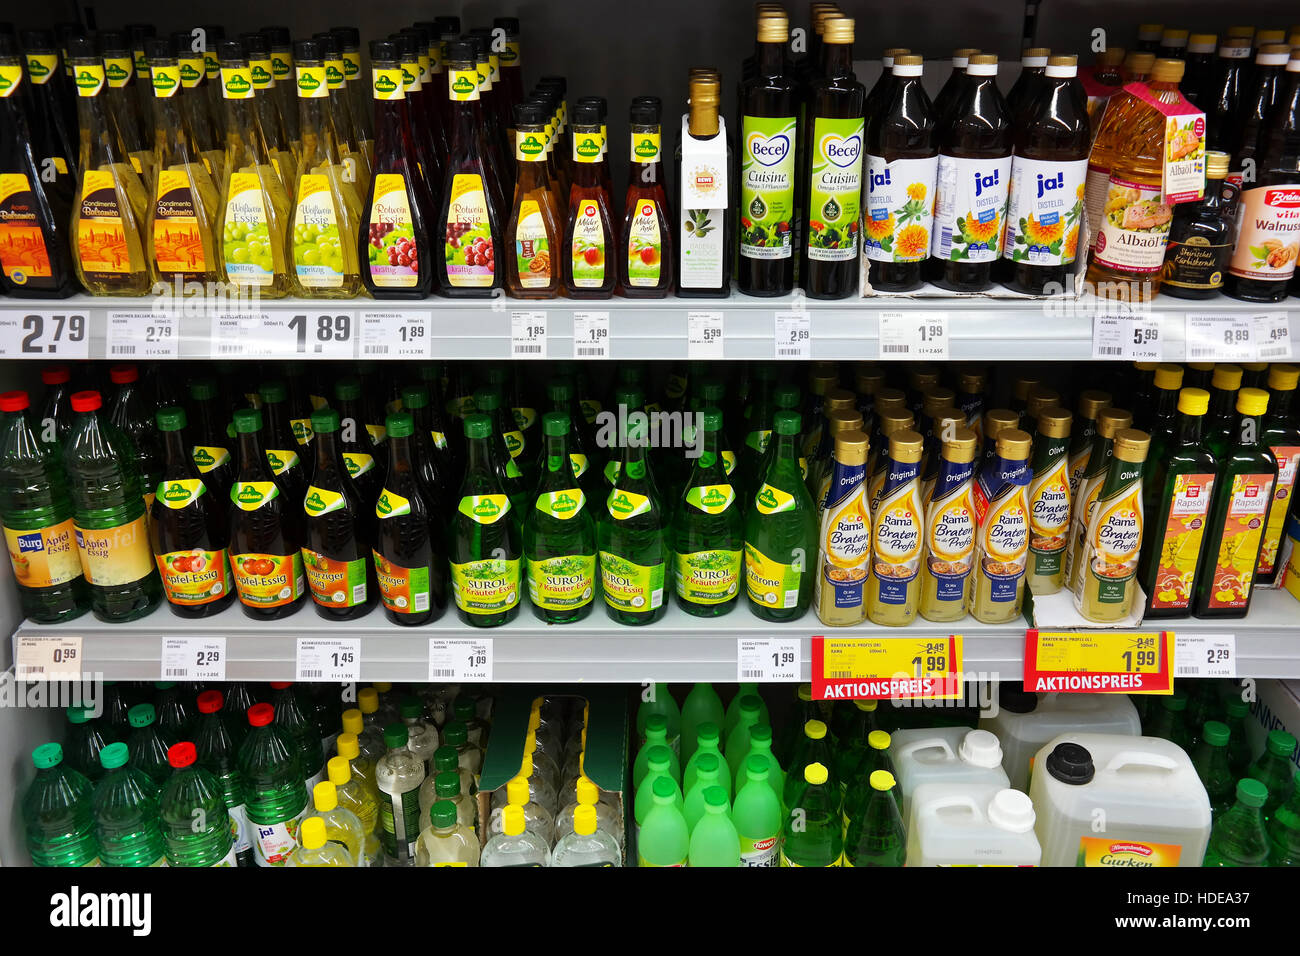 Oil and vinegar products in REWE supermarket - Stock Image